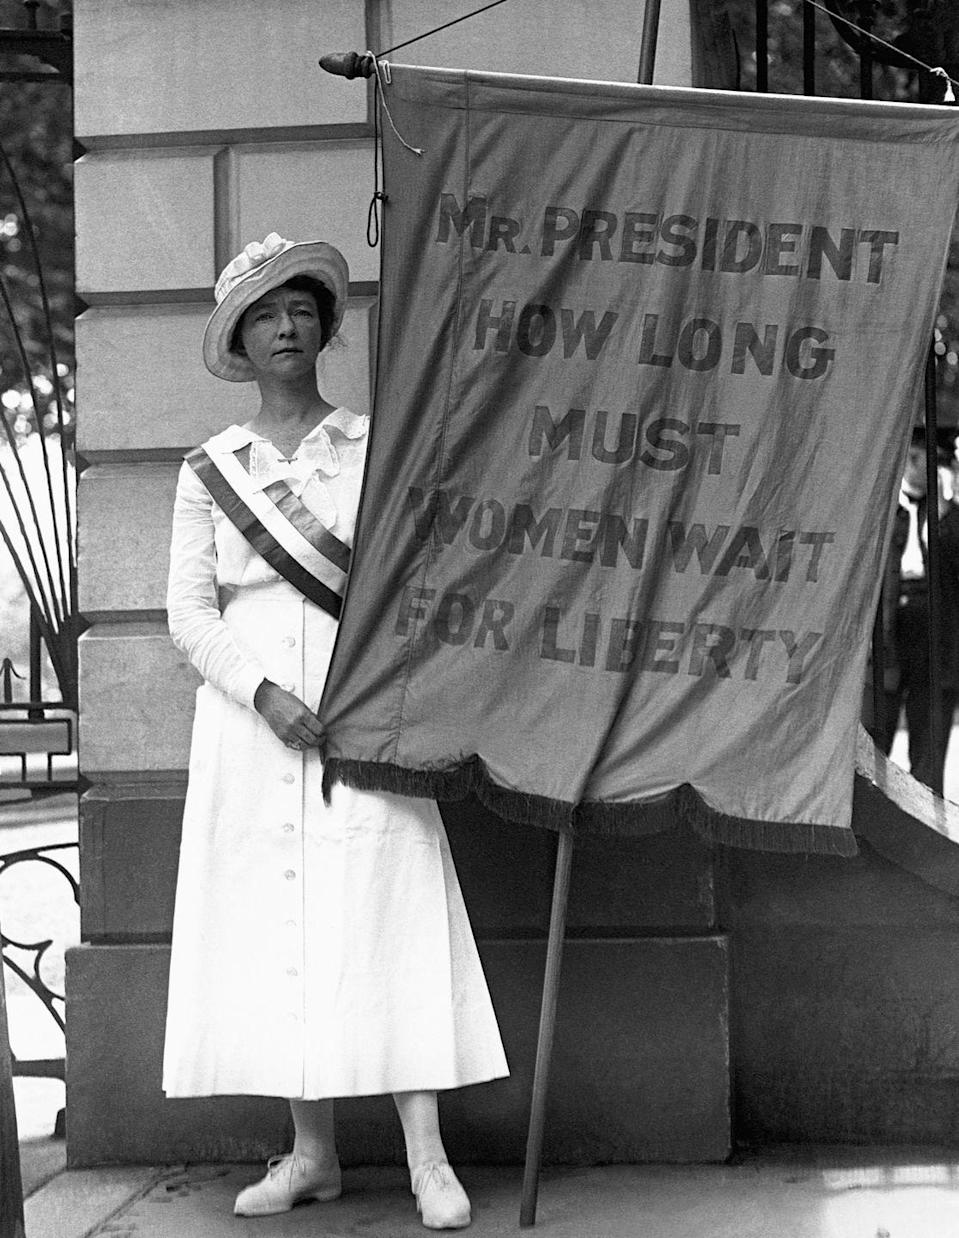 """<p>A woman identified as Mrs. William L. Colt picketed the White House in a series of protests for women's suffrage. In the early 1910s, protests organized by Alice Paul, Lucy Burns, and the National American Woman Suffrage Association (NAWSA) erupted in Washington the day before President Woodrow Wilson's inauguration. The group's message was to """"march in a spirit of protest against the present political organization of society, from which women are excluded.""""</p>"""